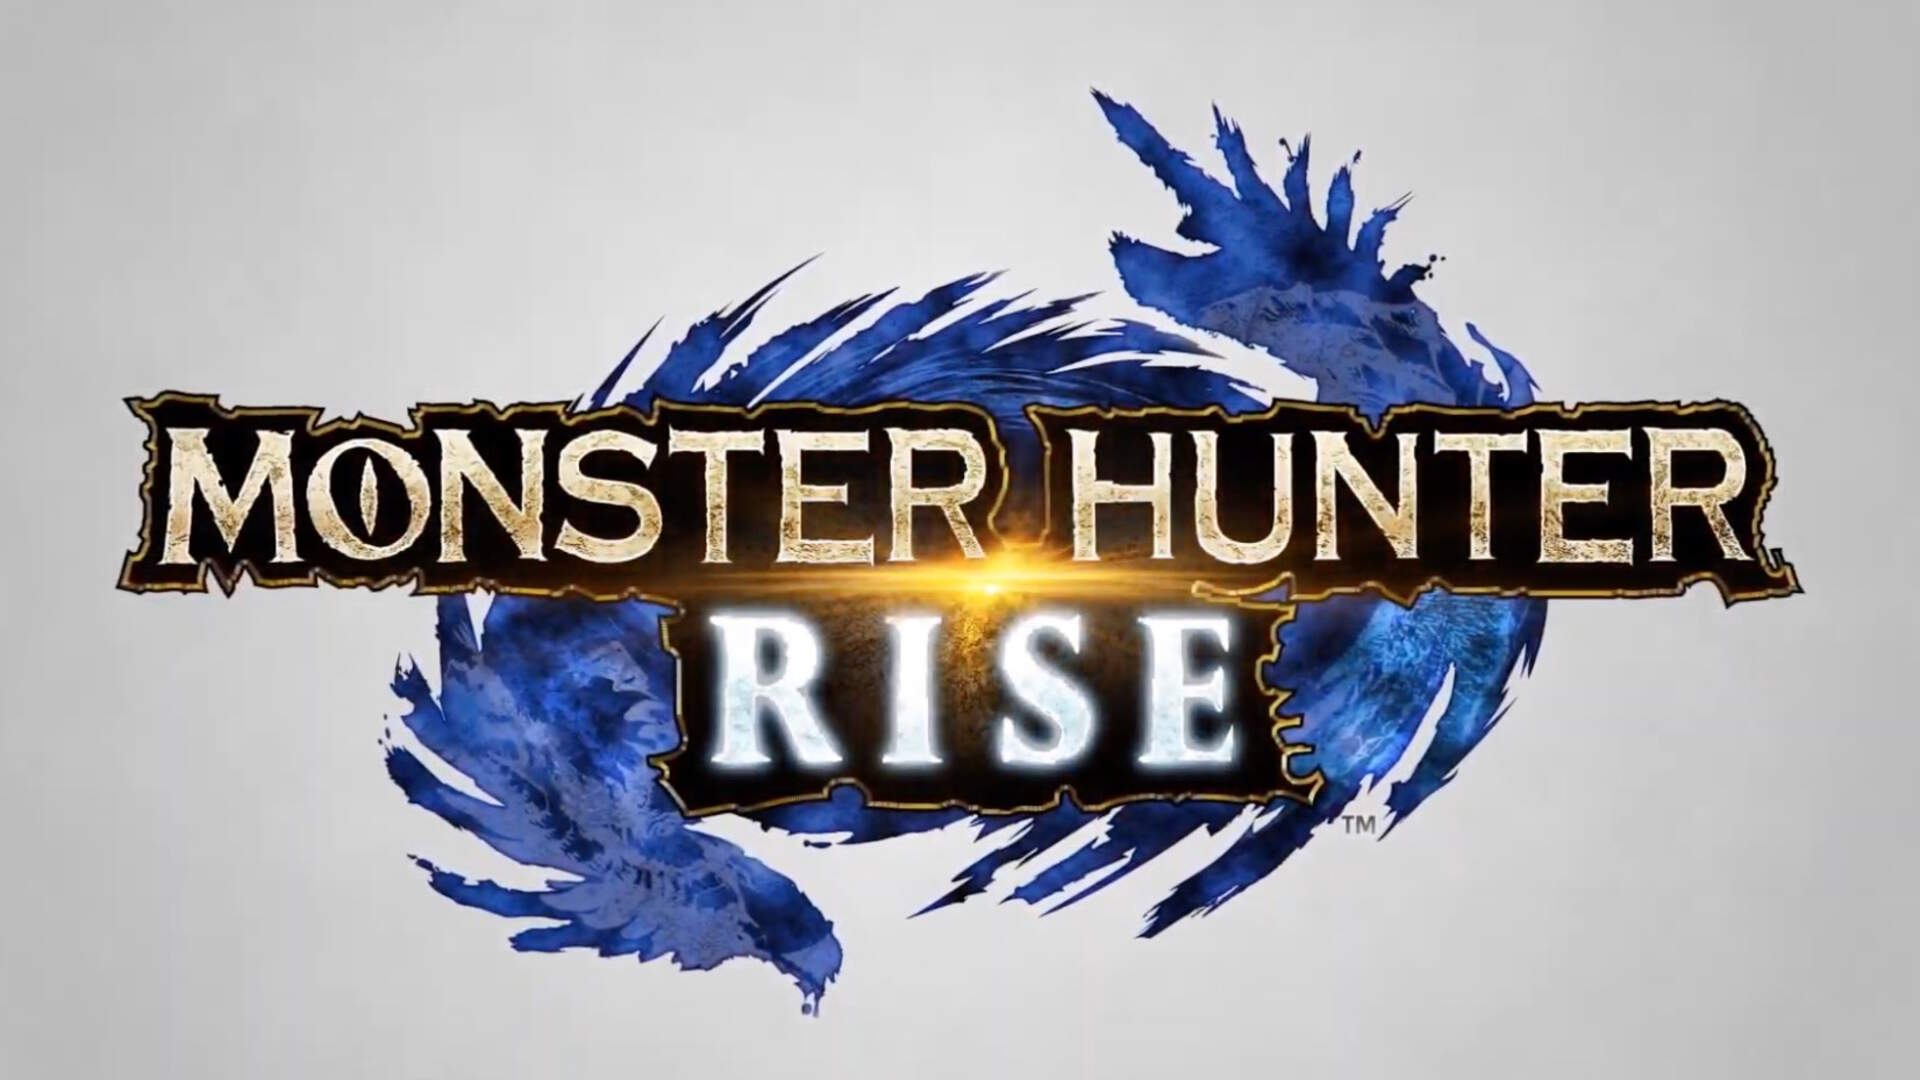 Monster Hunter: Rise is a Switch Exclusive Launching in March 2021